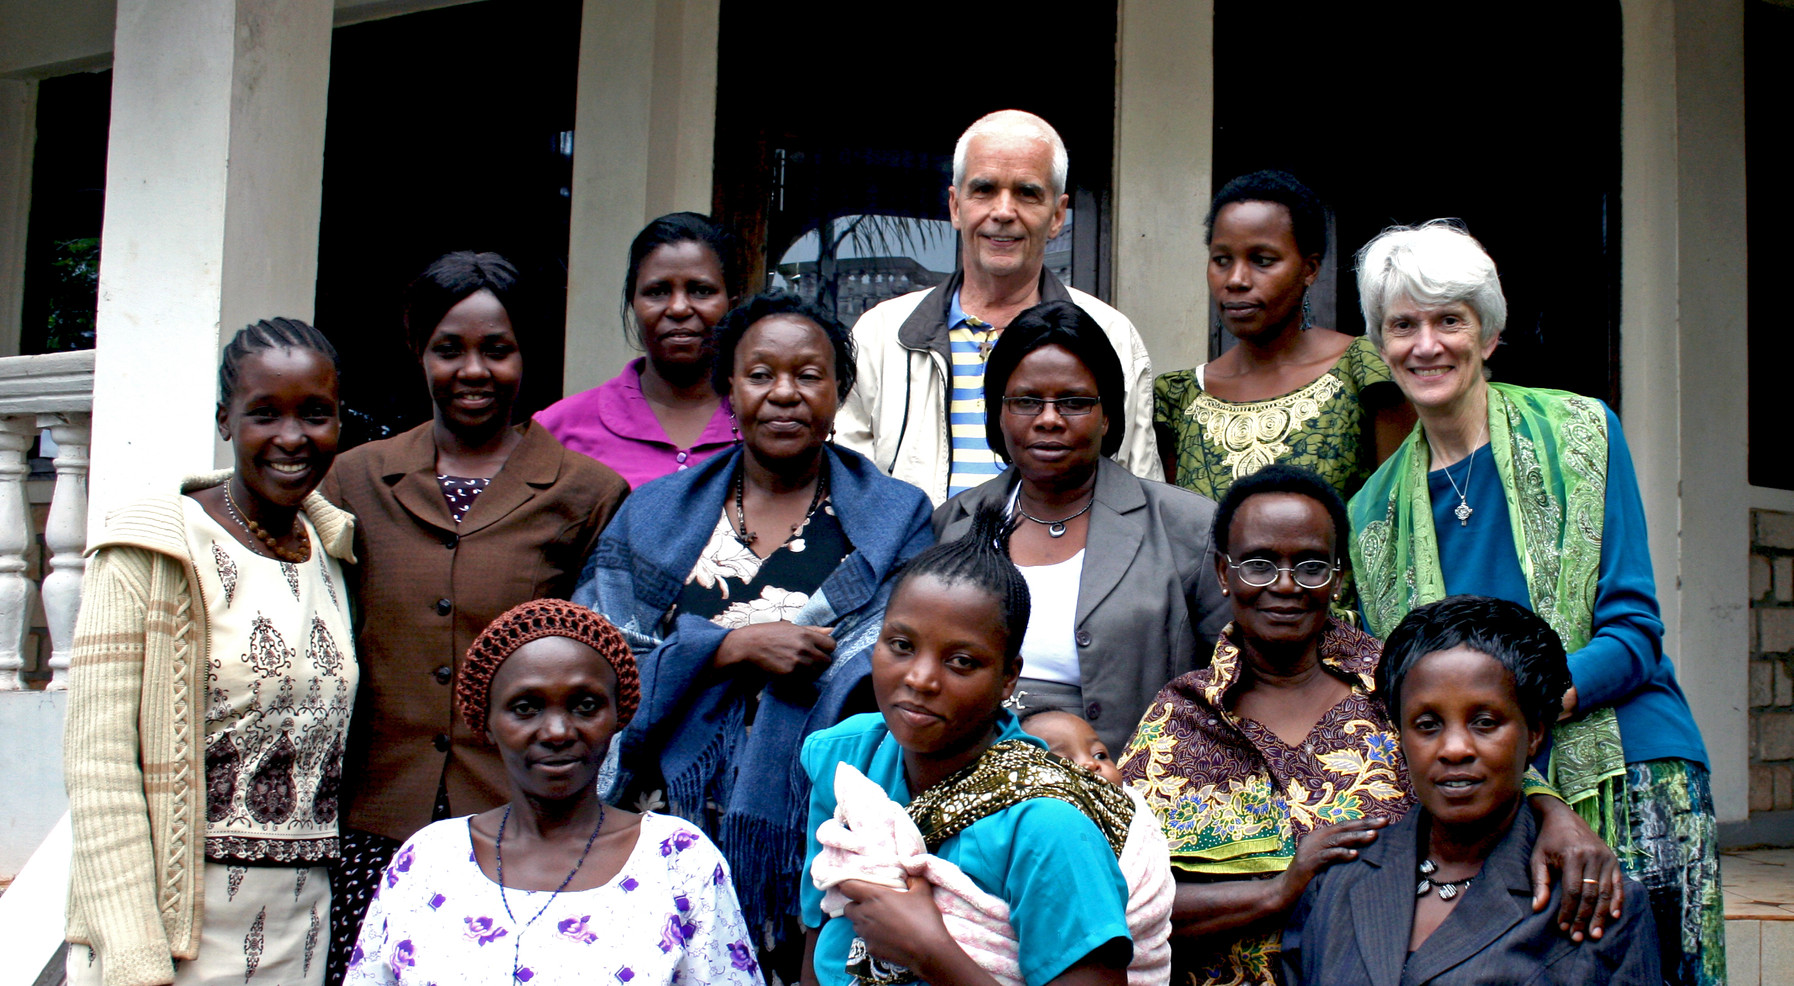 Women's Global Connection was founded by Sisters Dorothy Ettling and Neomi Hayes. Women's Global Connection strengthens families and communities and works for transformative change. The organization fosters innovative partnerships that support projects linking women and girls to education, technology, and business opportunities. (co-founder, Sr. Dorothy Ettling, far right)